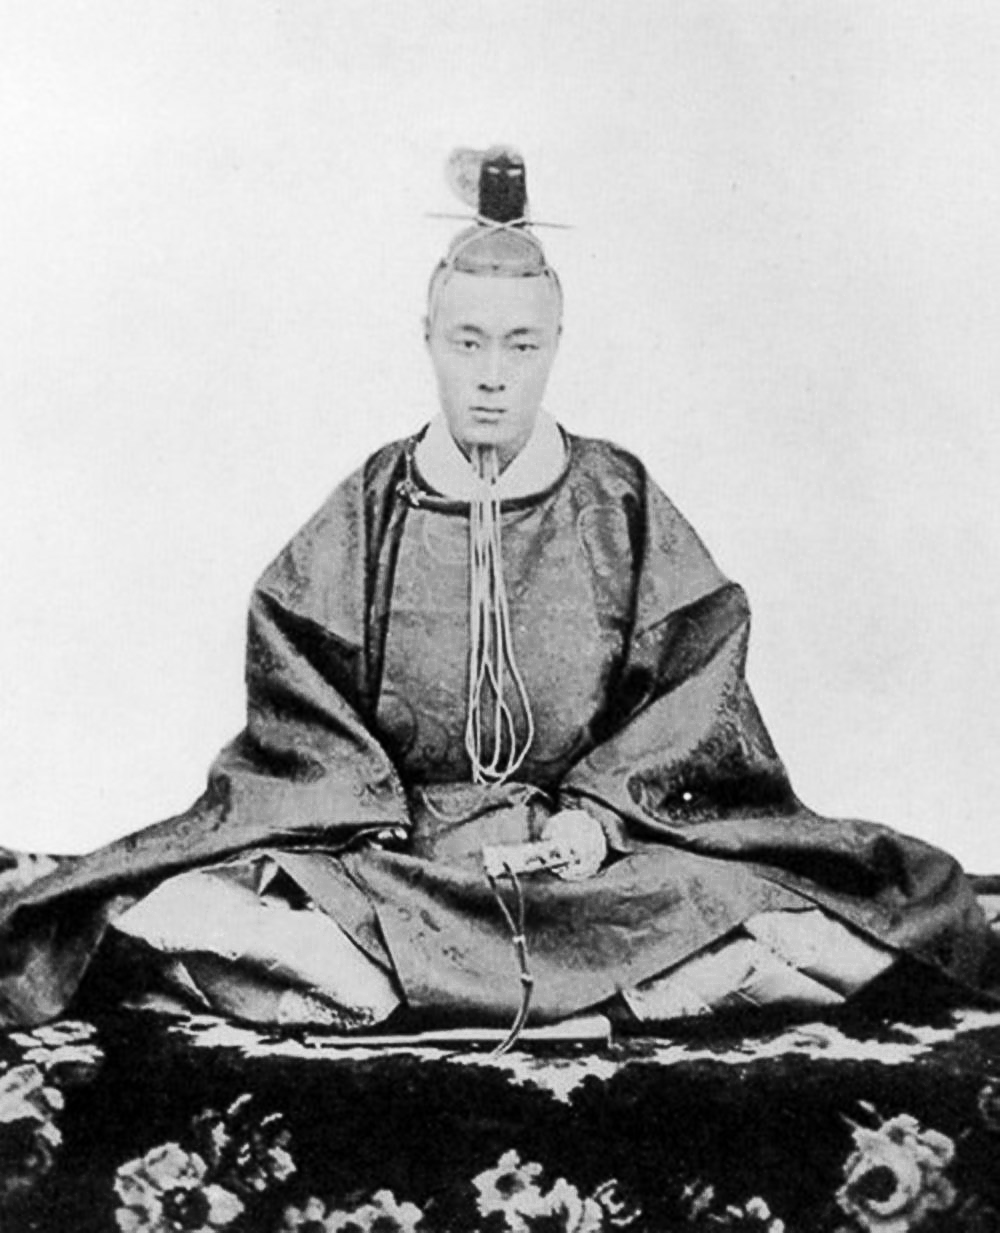 https://upload.wikimedia.org/wikipedia/commons/2/24/Tokugawa_yoshinobu.jpg